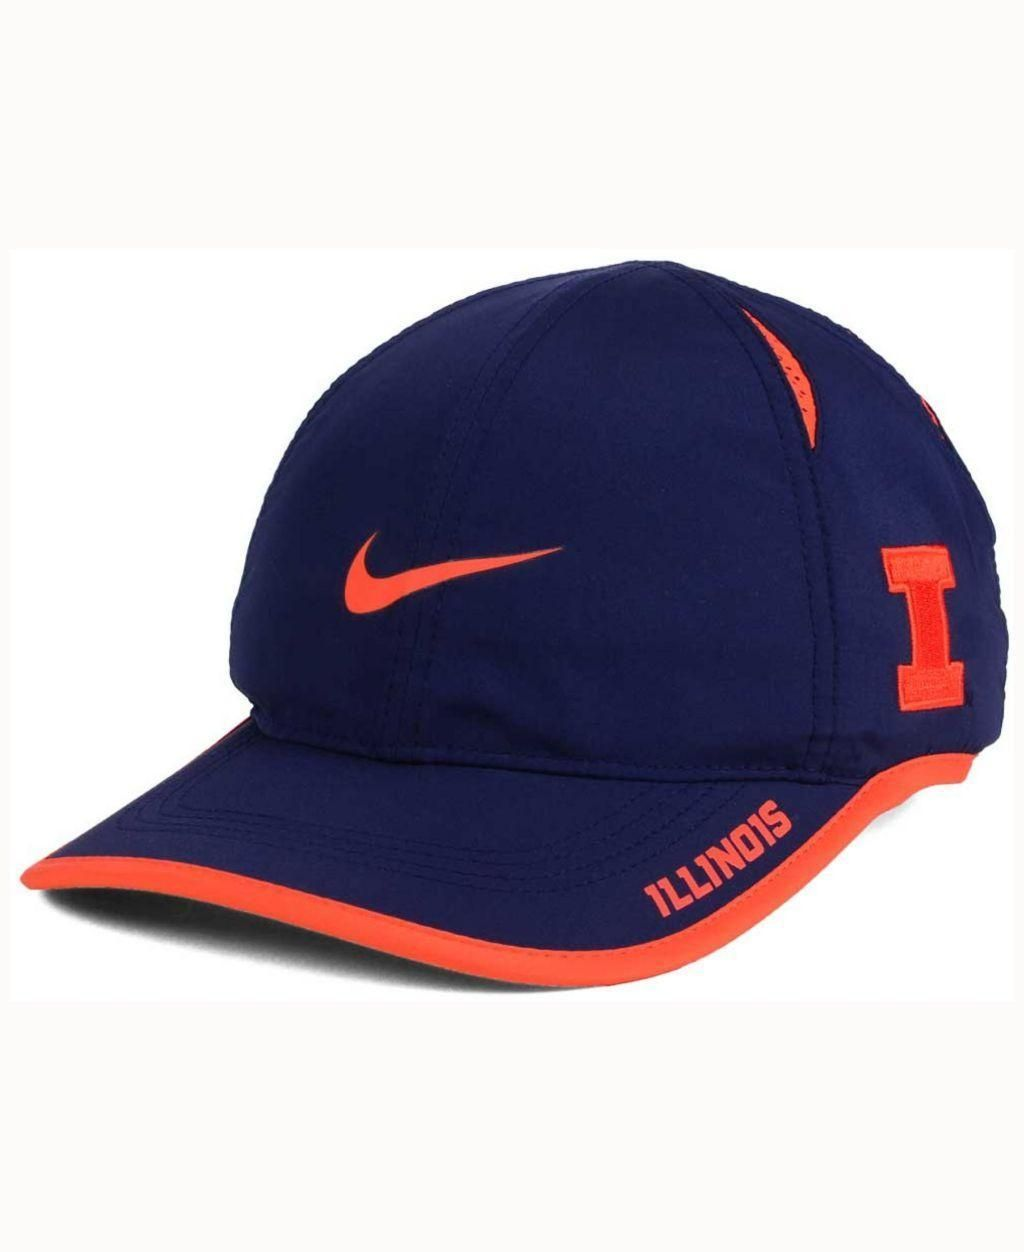 979bb1b5afb Nike Illinois Fighting Illini Featherlight Cap - Brought to you by ...